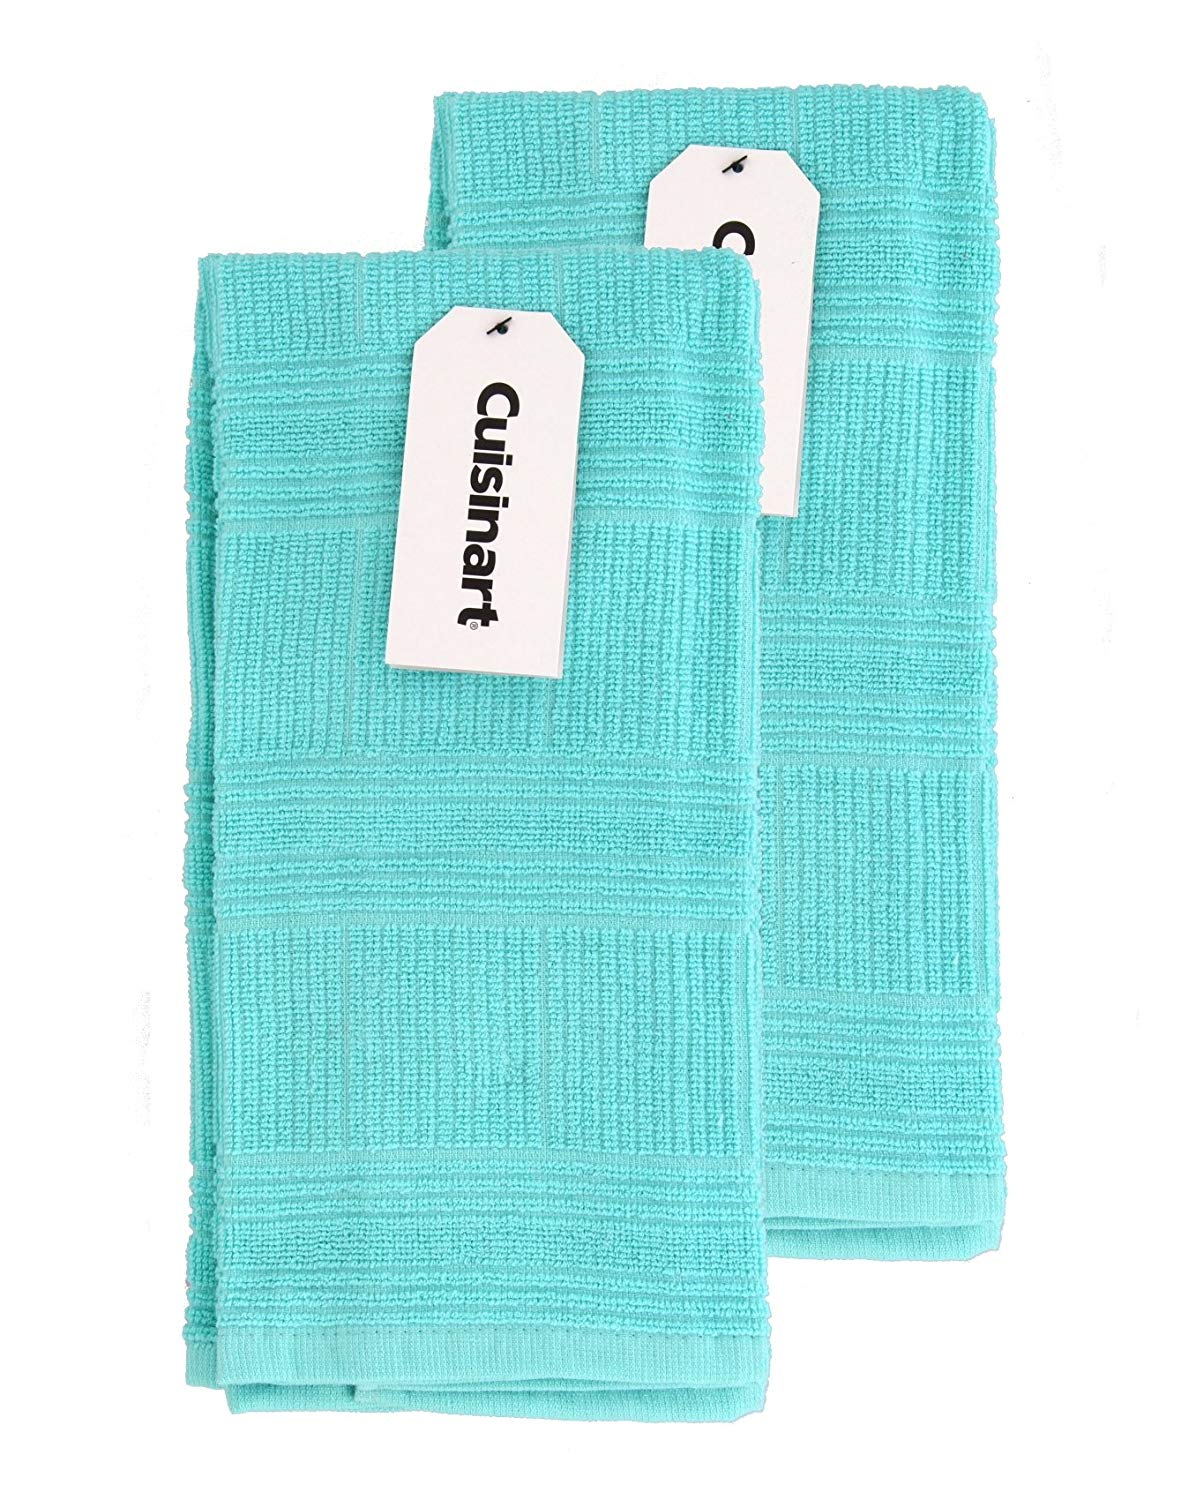 Microfiber Dish Towels Gift Set with Baking and Cooking Utensils Design Set of 2 Yellow and Teal Kitchen Dish Towels Comes in Organza Gift Bag